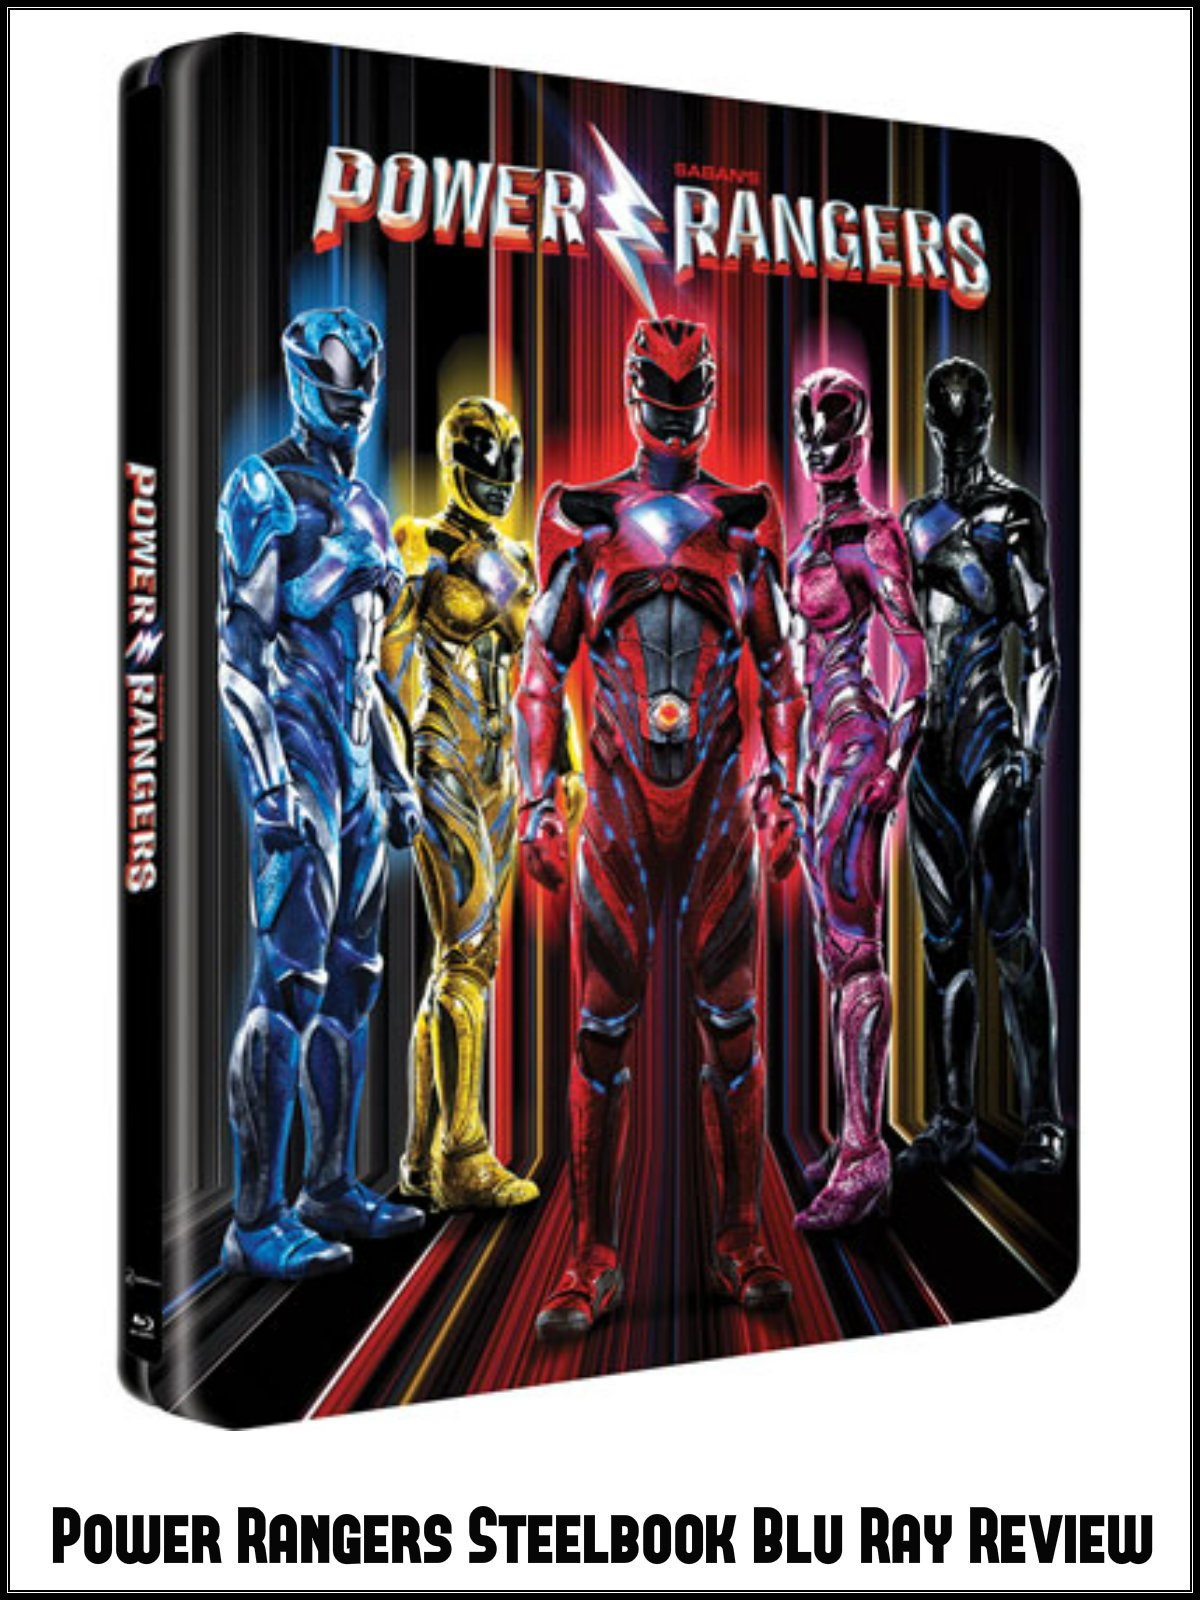 Review: Power Rangers Steelbook Blu Ray Review on Amazon Prime Video UK